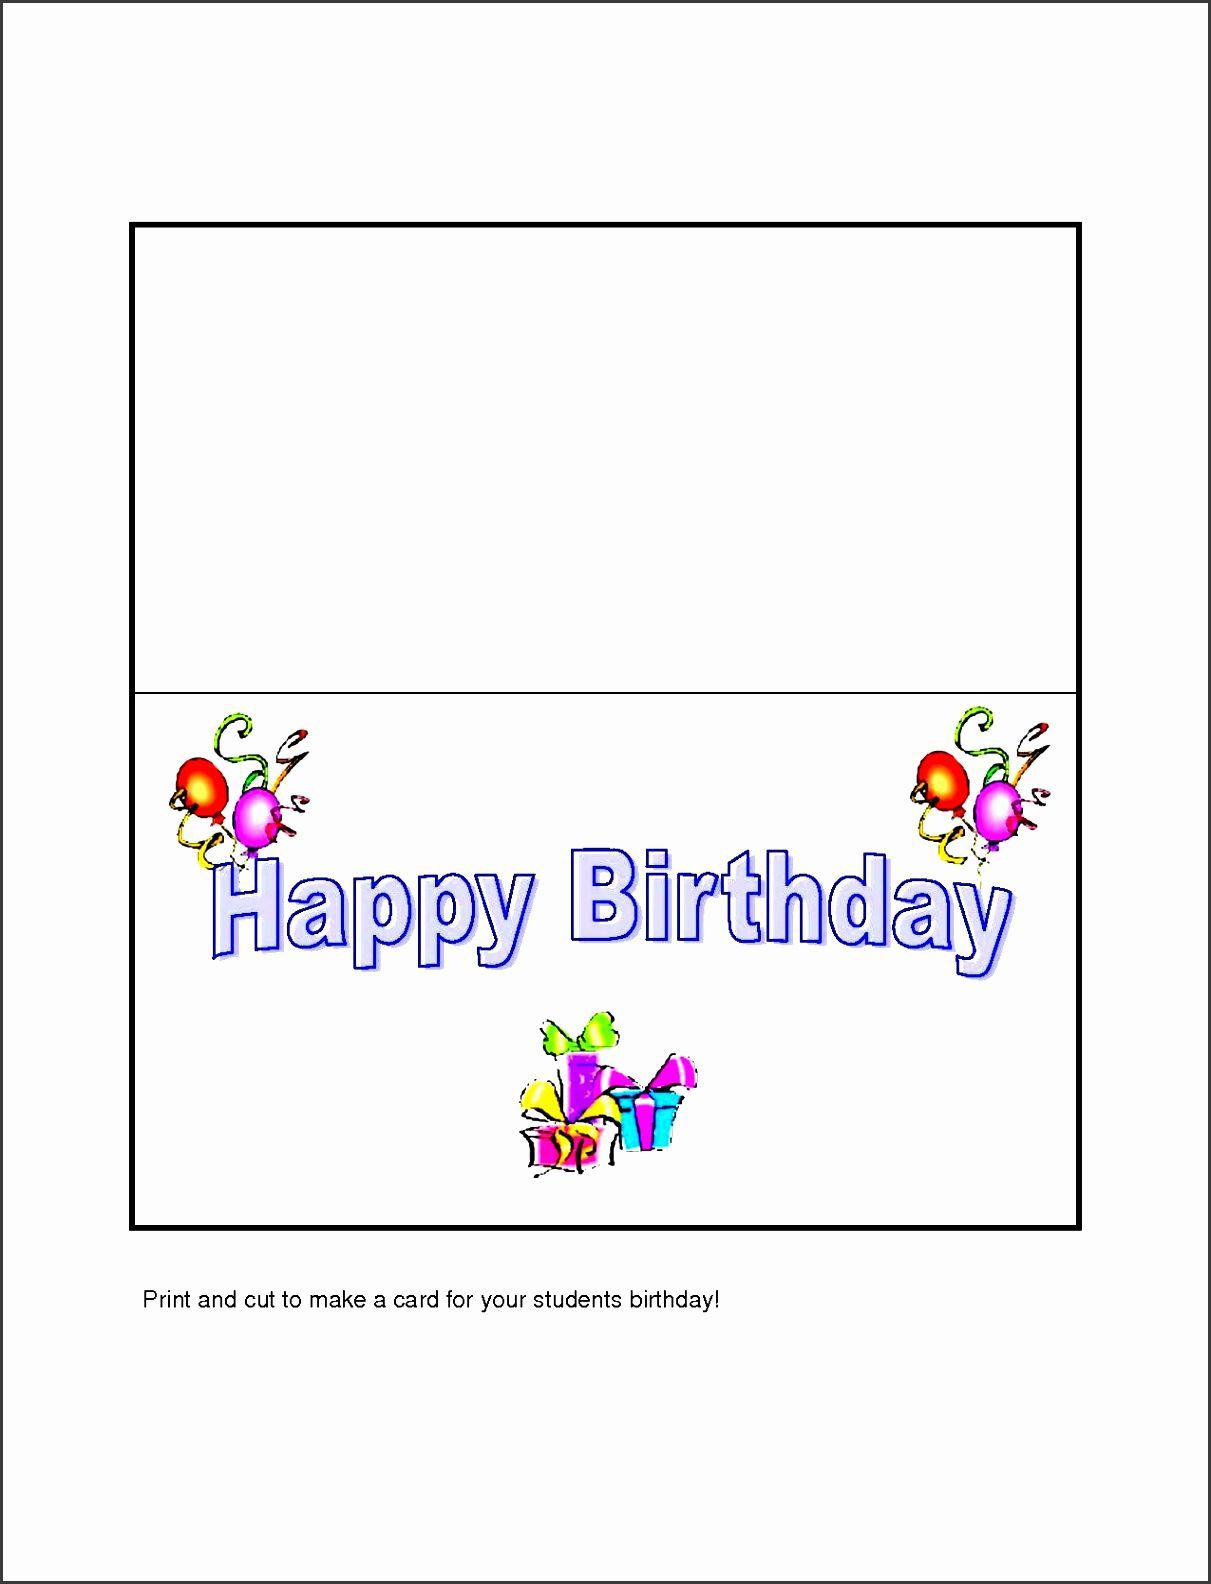 005 Fearsome Template For Birthday Card Photo  Happy InvitationFull